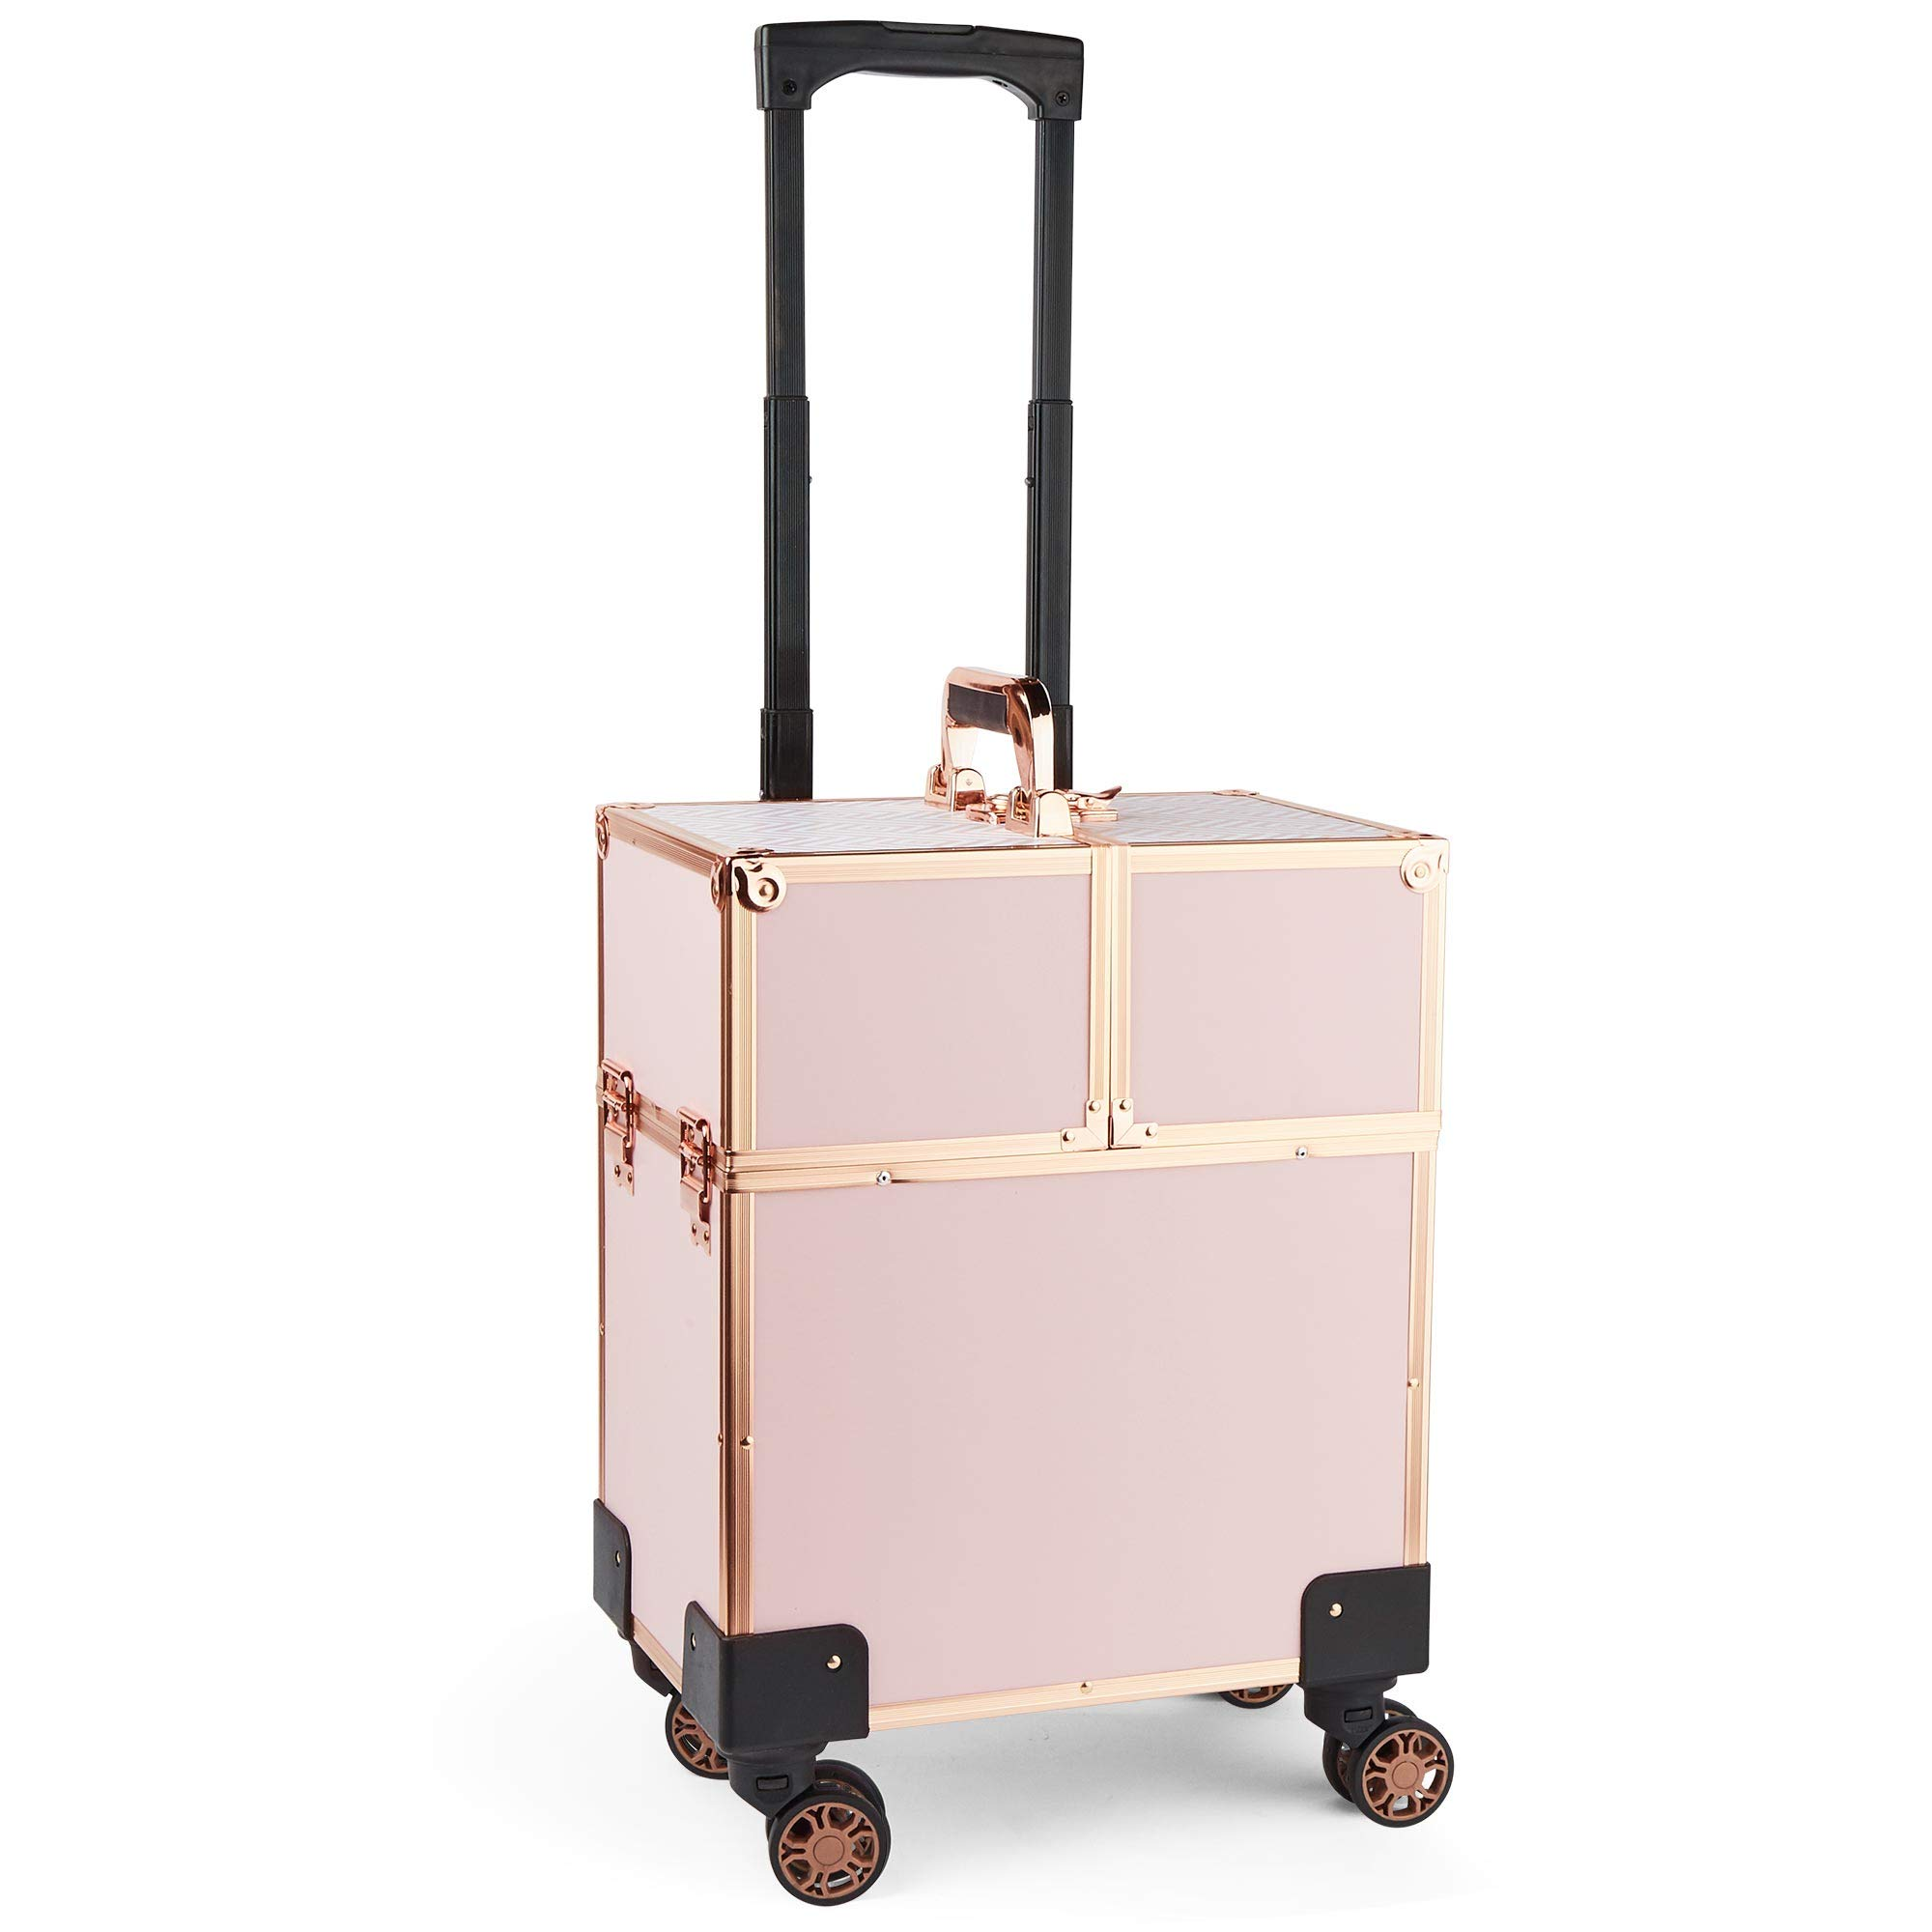 Beautify Rose Gold Beauty Trolley - Travel Case - Train Case - Vanity Box - Luggage Suitcase - Storage Organizer - Hairdresser, MUA, Nail Artist by Beautify